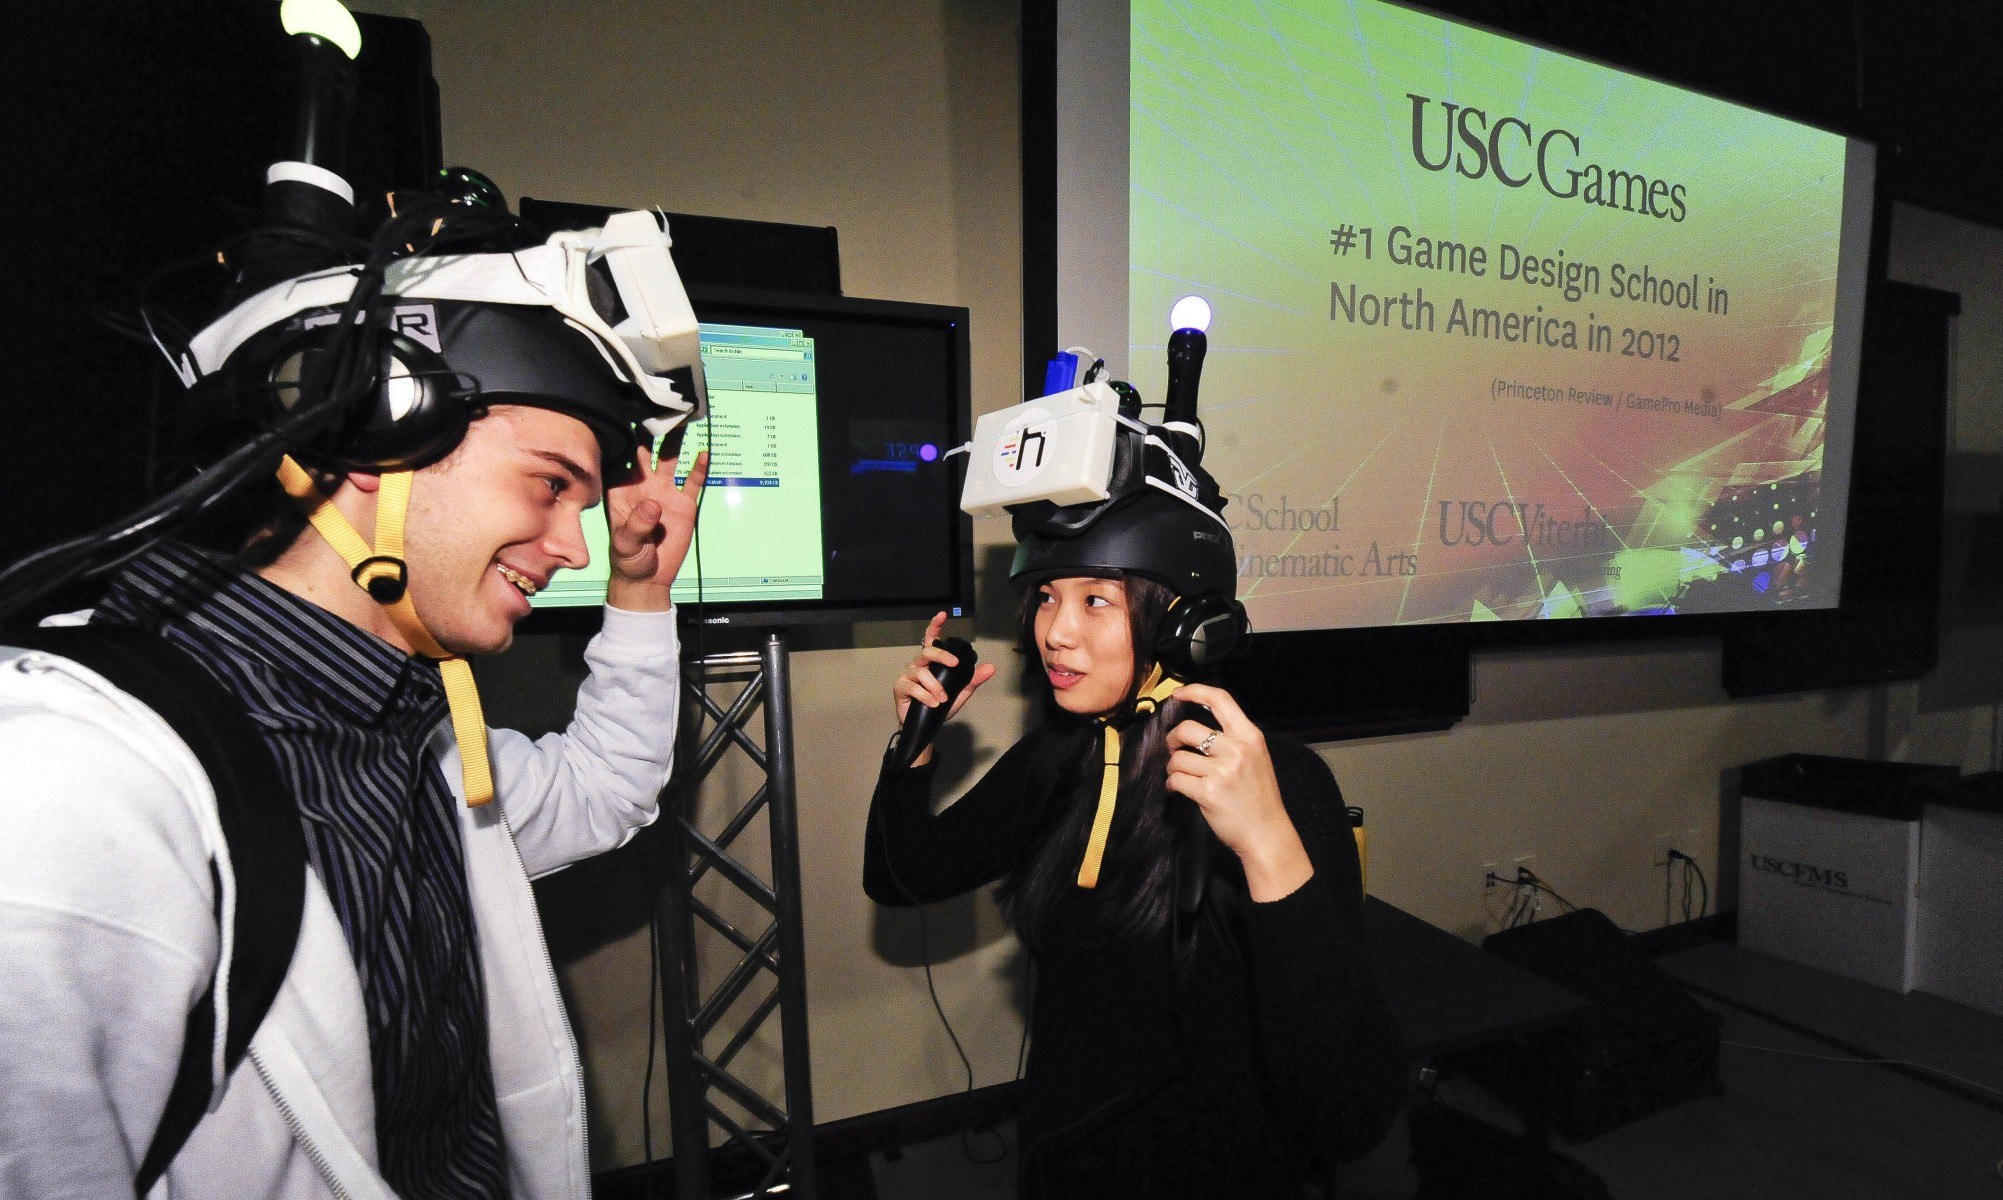 Usc Games Design Program